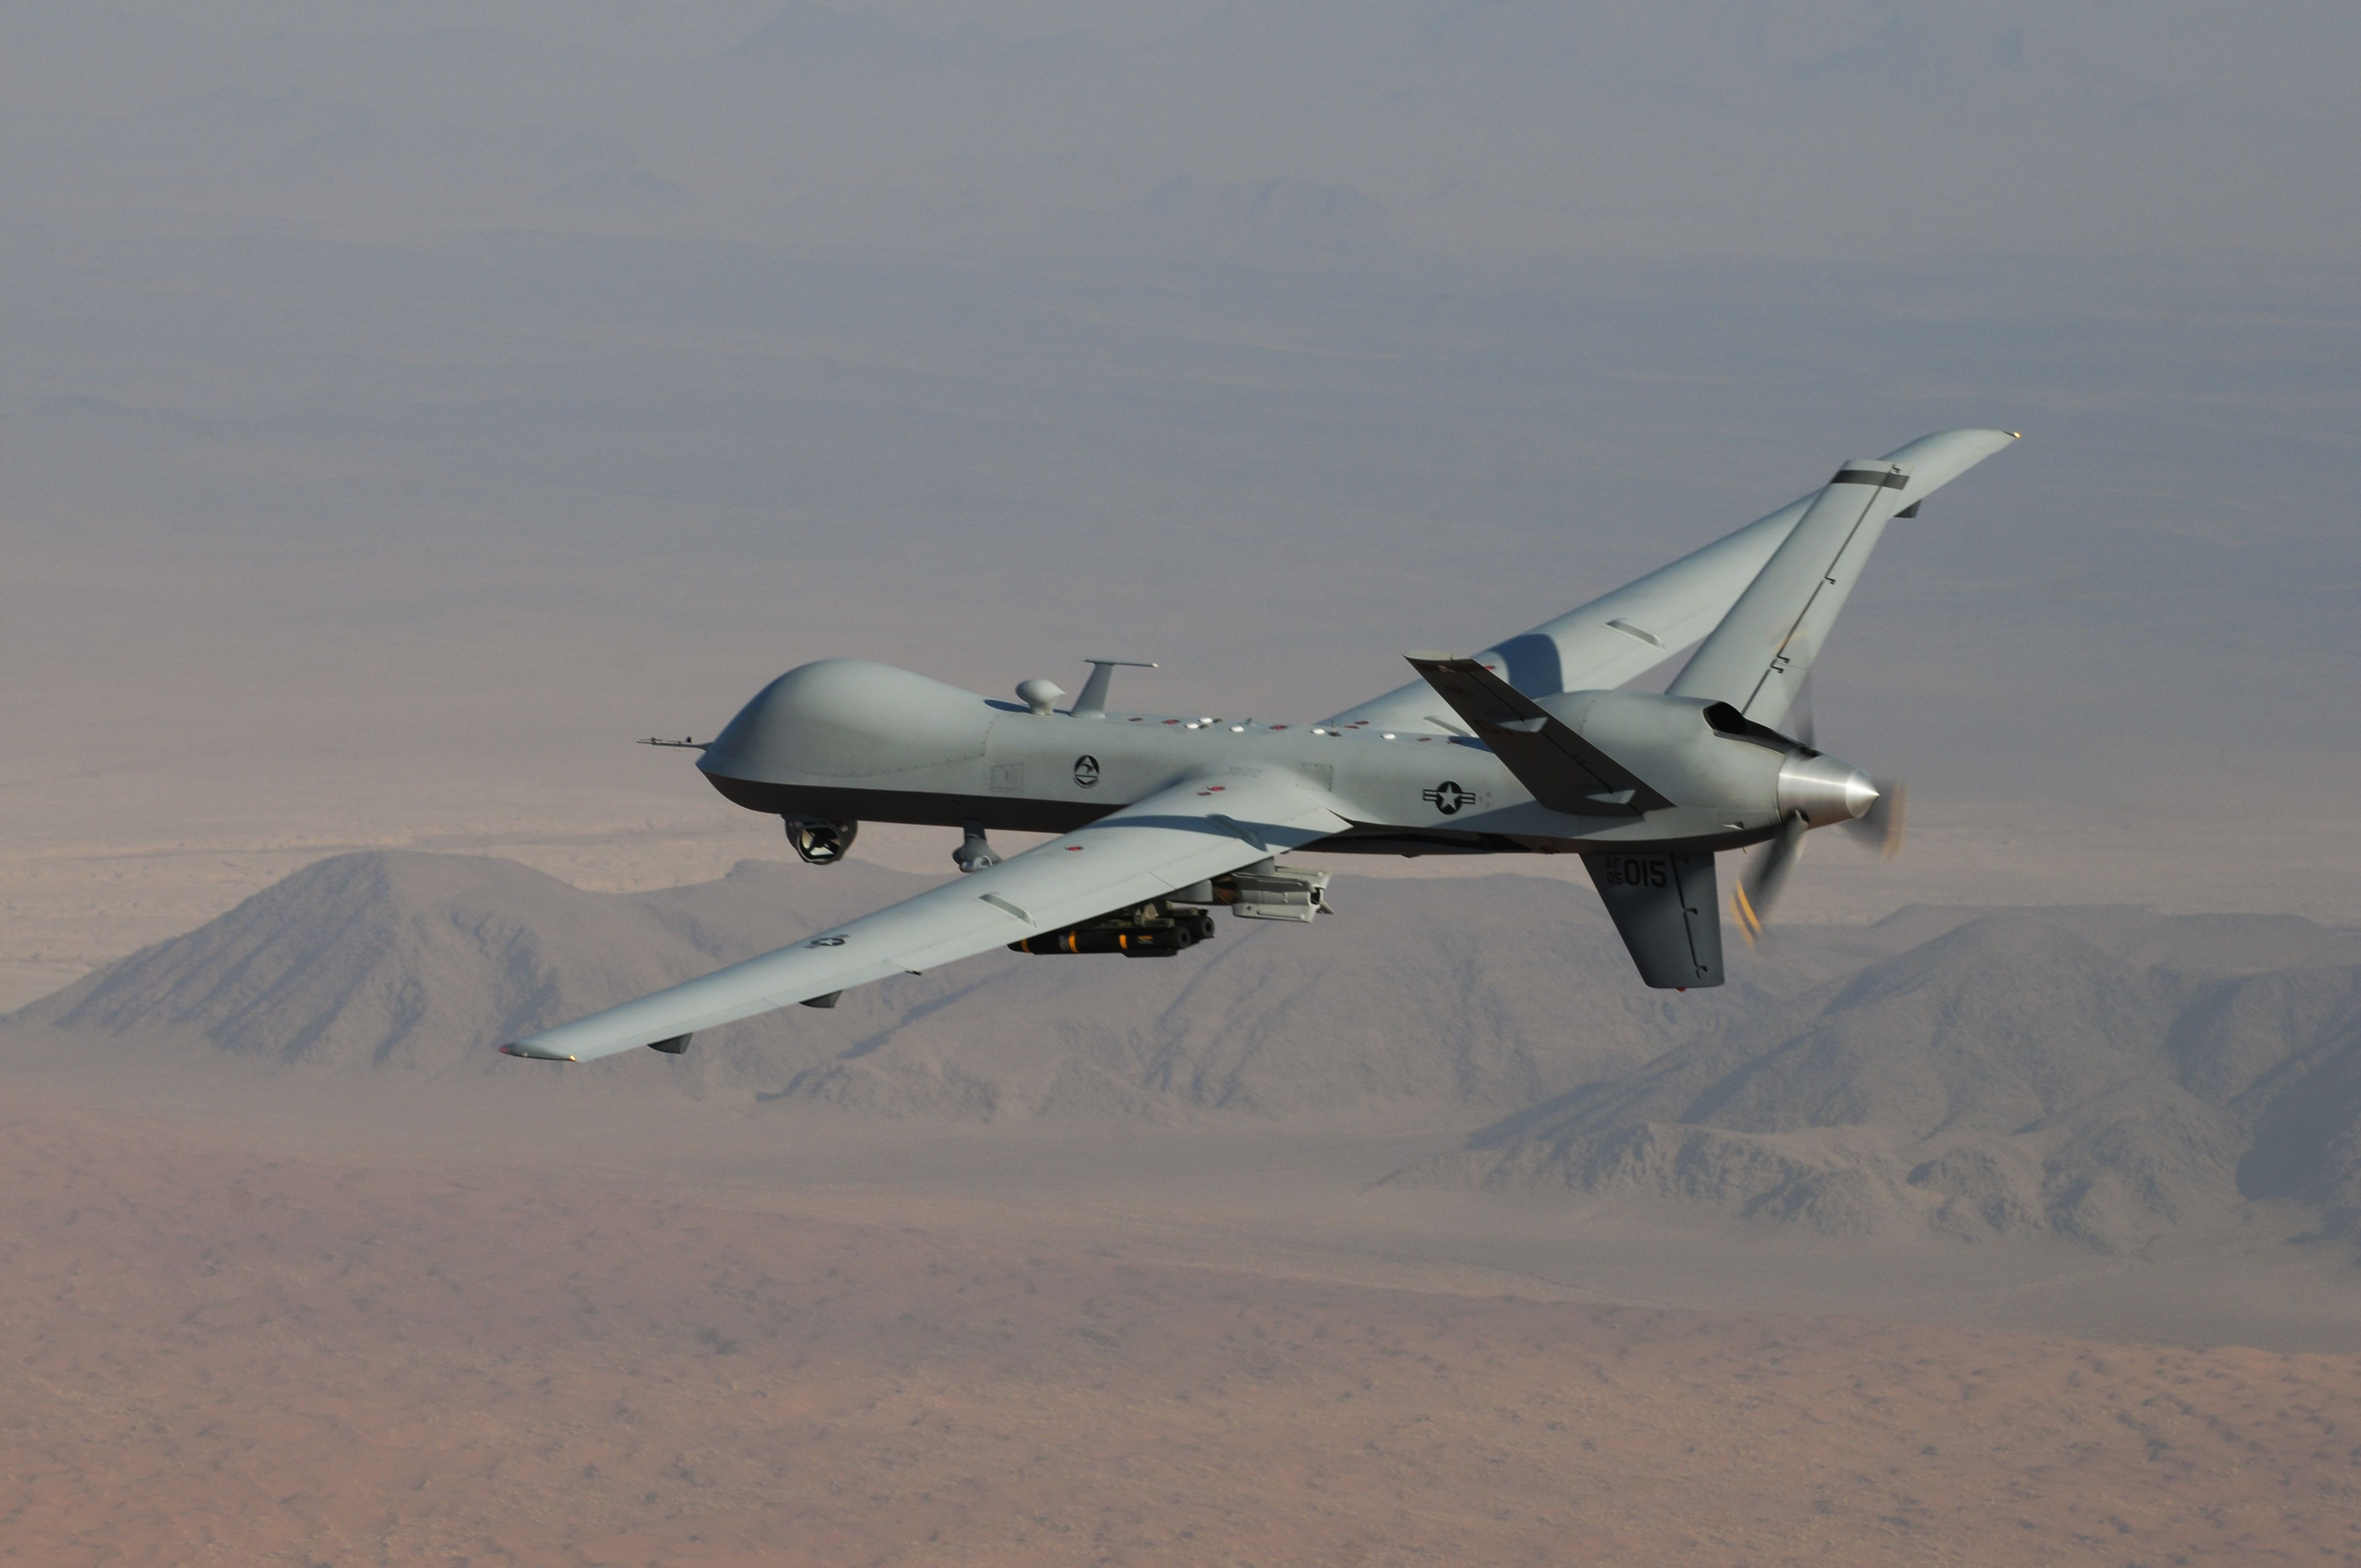 UPDATED: Centcom Confirms Reaper Shoot Down, Says Iran And Houthis